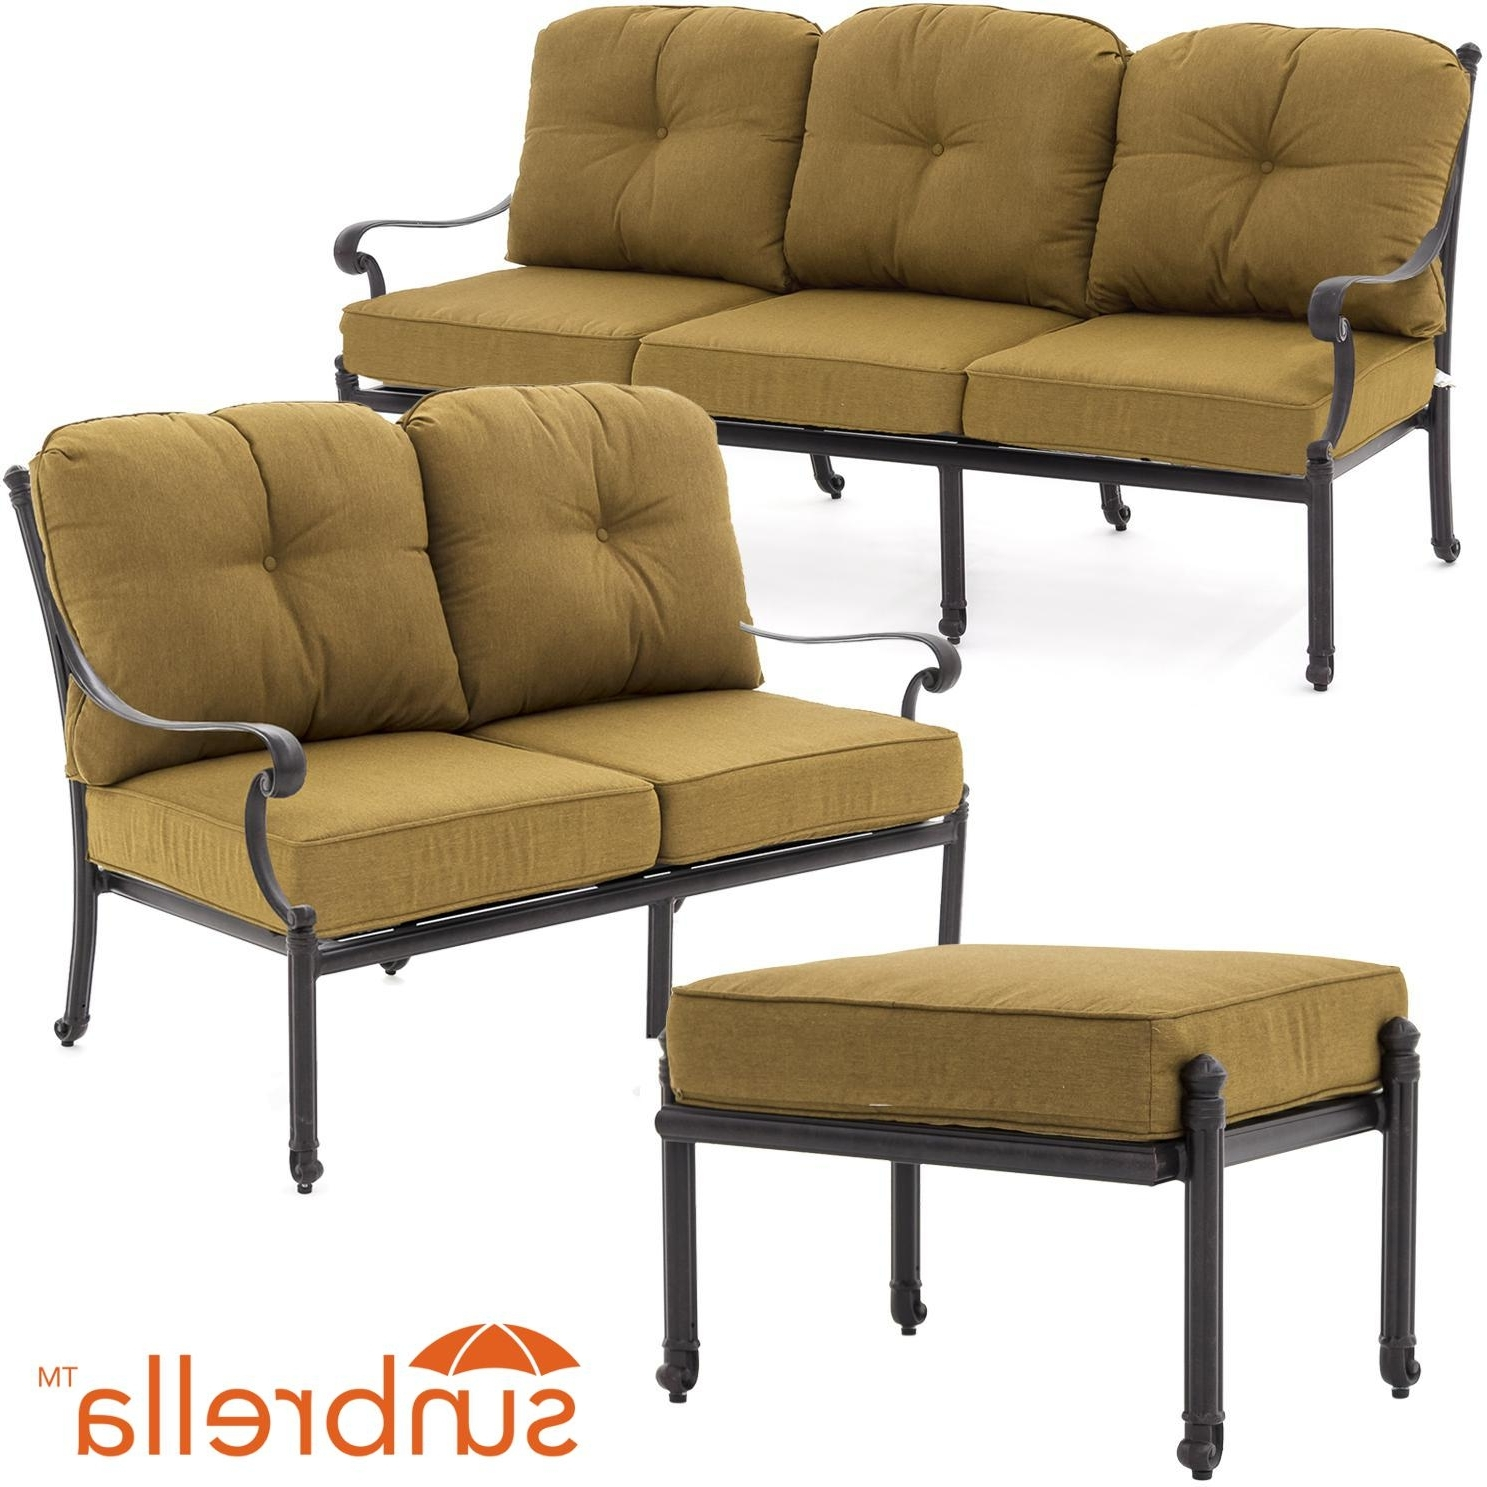 Patio Conversation Sets With Sunbrella Cushions Intended For Widely Used Evangeline 3 Piece Cast Aluminum Outdoor Conversation Set W (View 13 of 15)